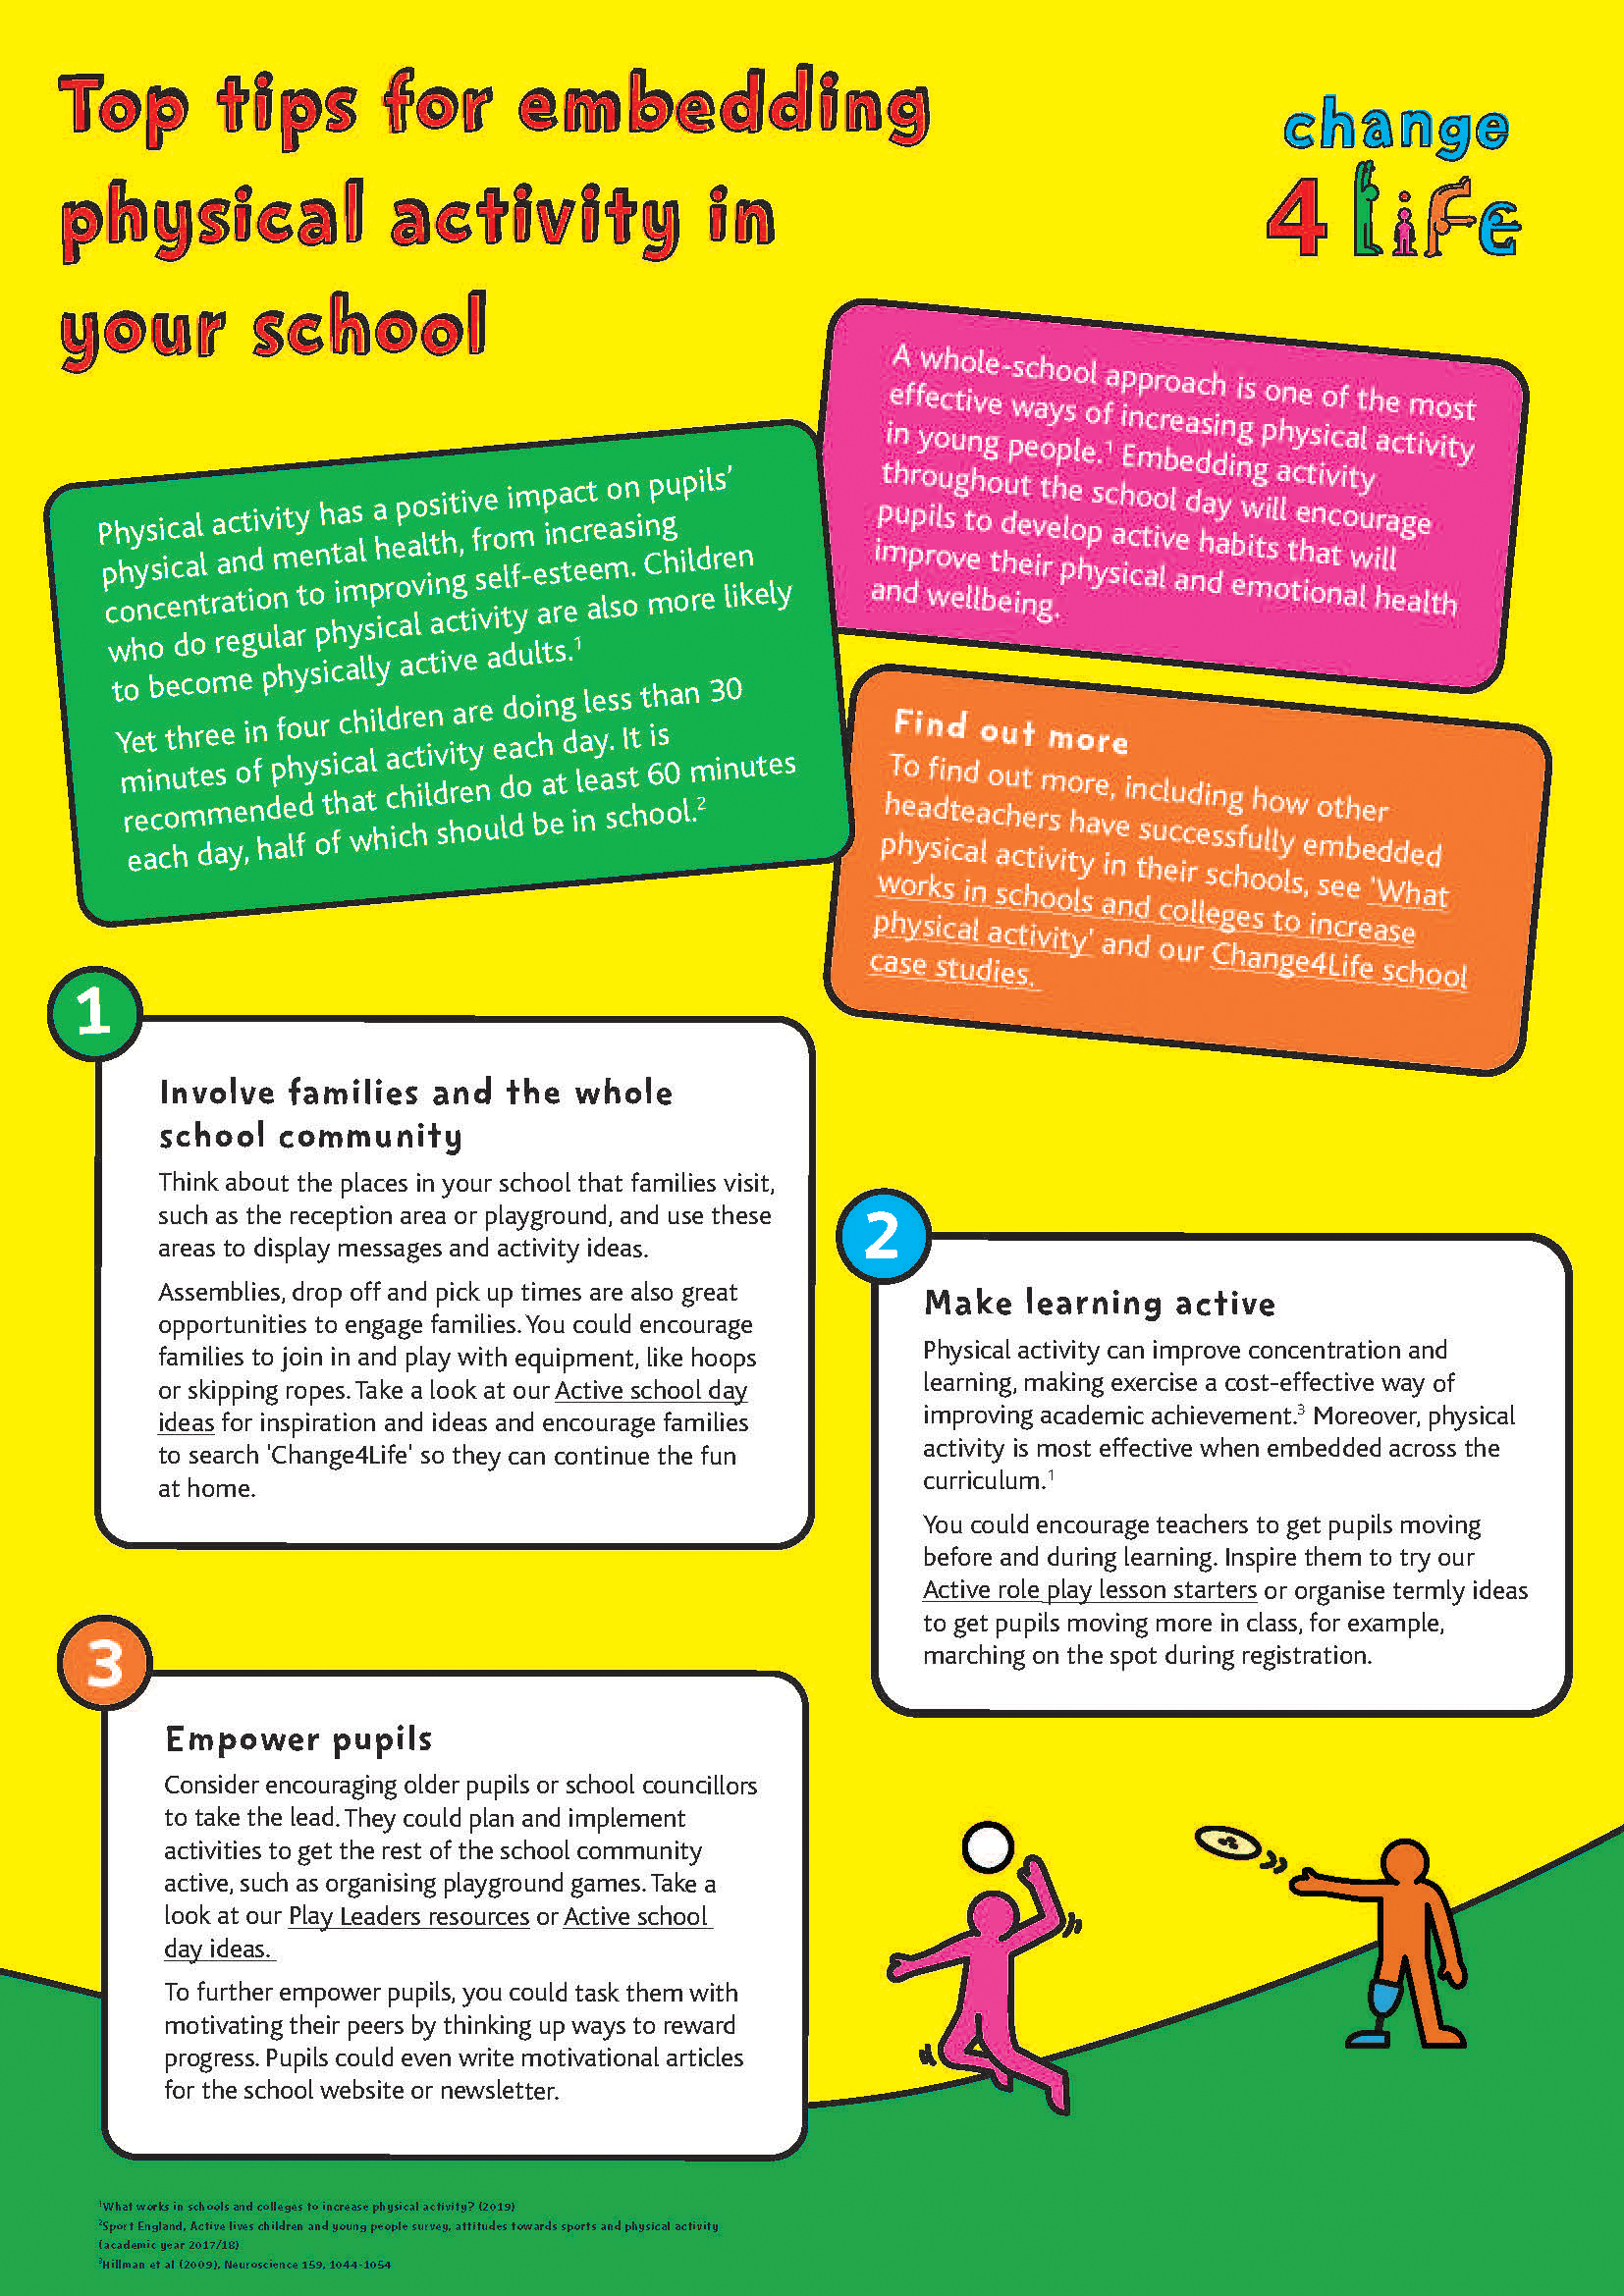 Top tips for embedding physical activity in your whole